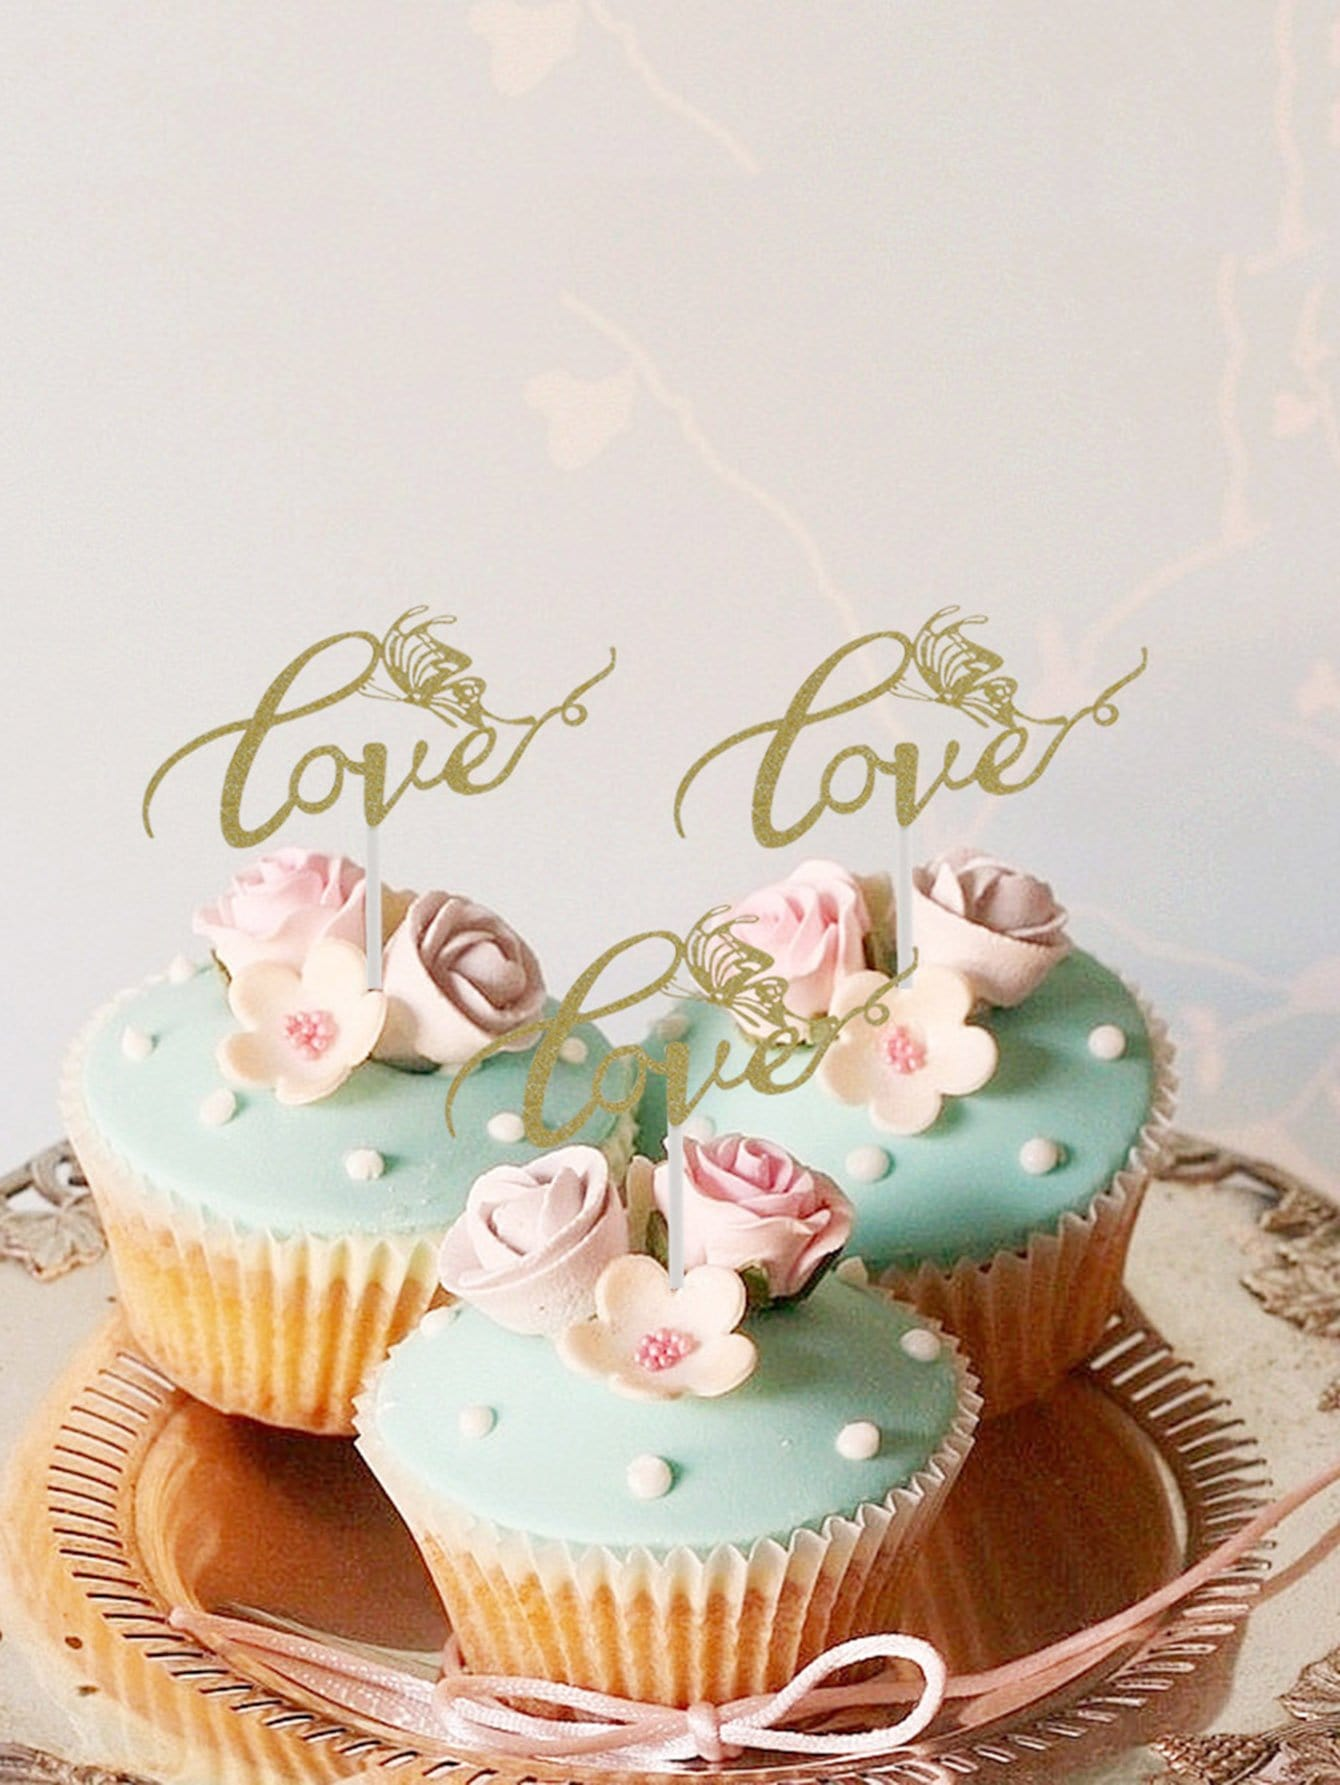 Cake Topper Decoration 1pc With Paper Stick